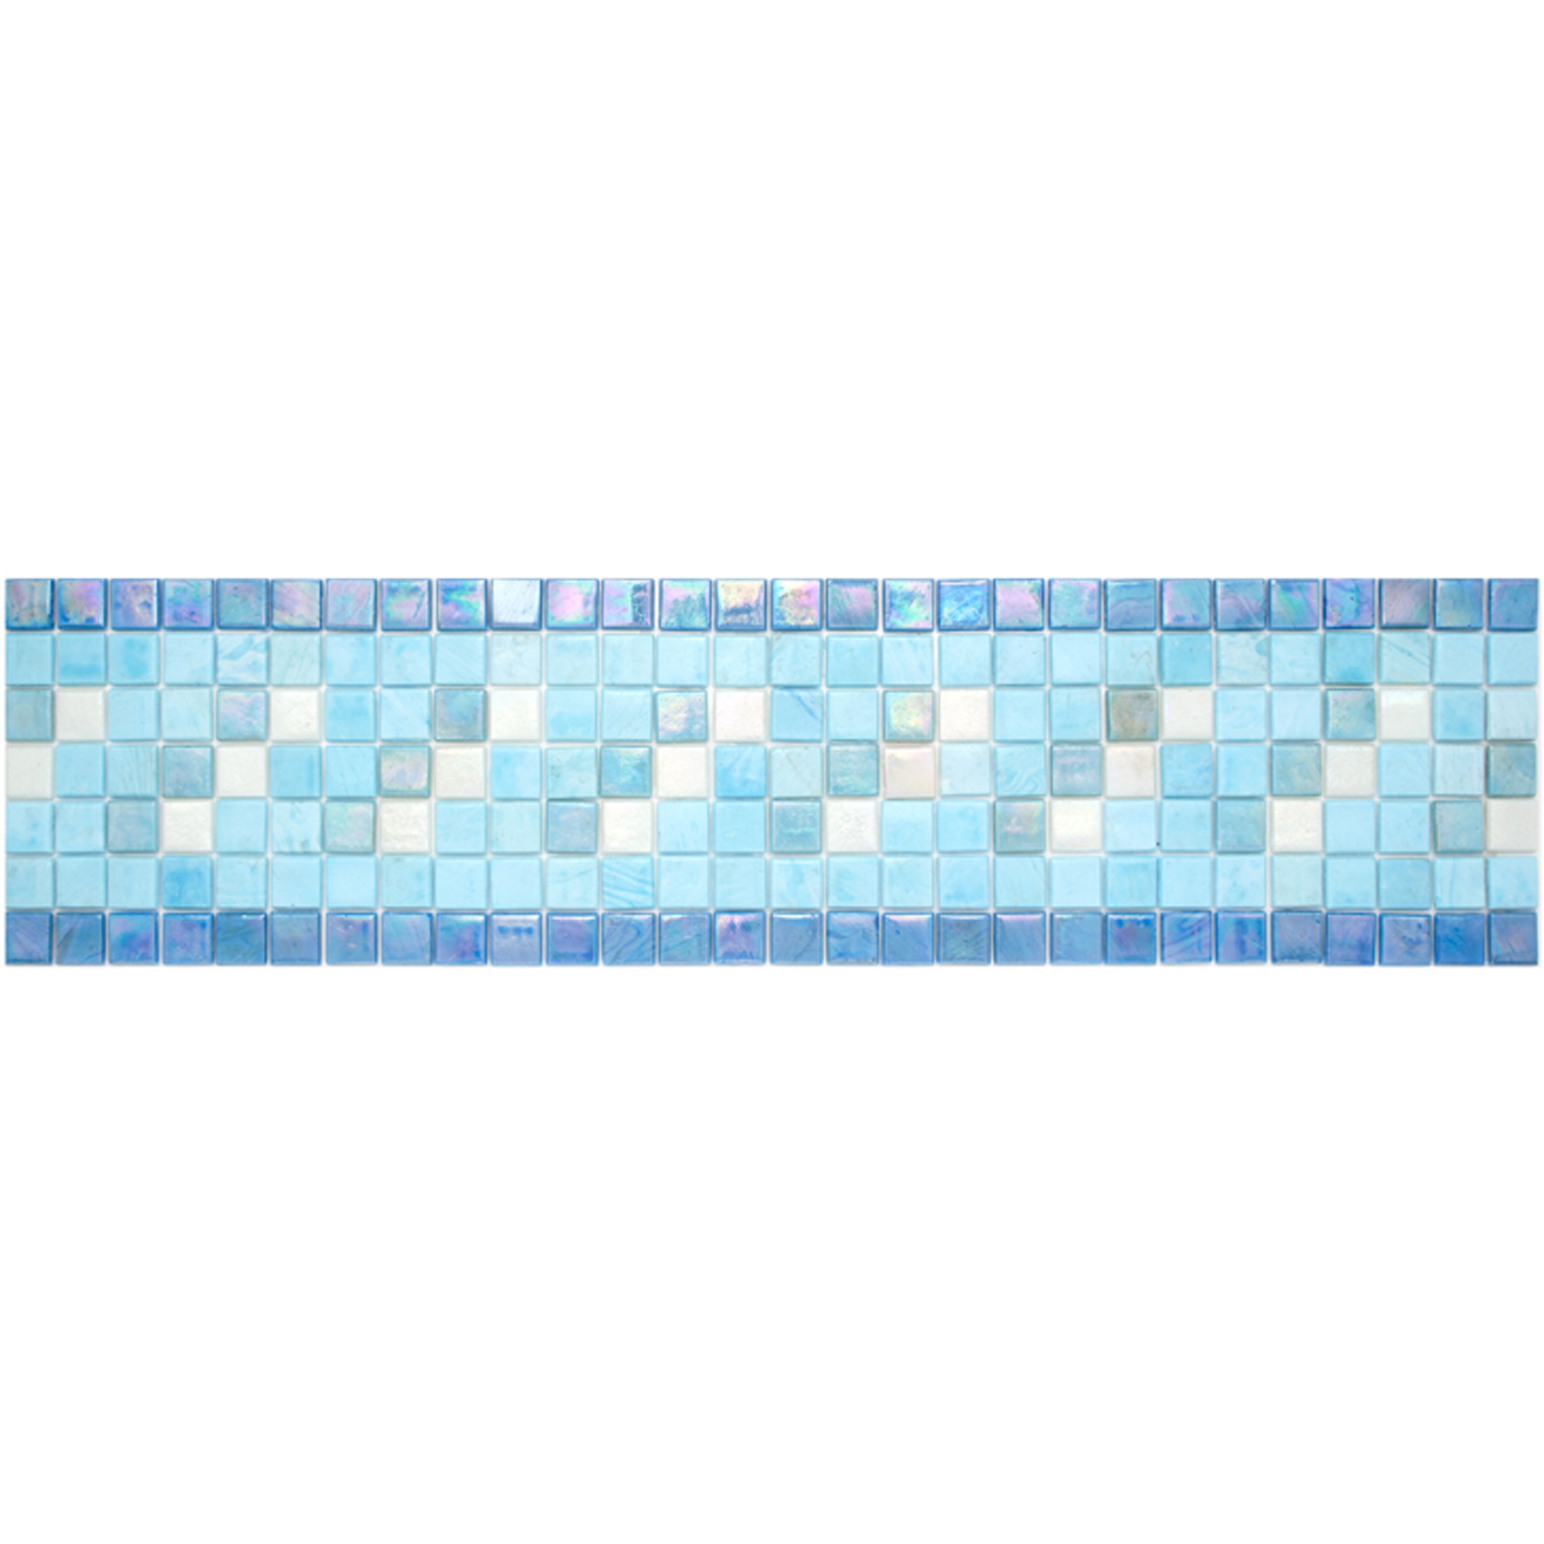 "Island Glass Mosaic Waterline or Border 5.5"" High, 1 Lineal Foot"